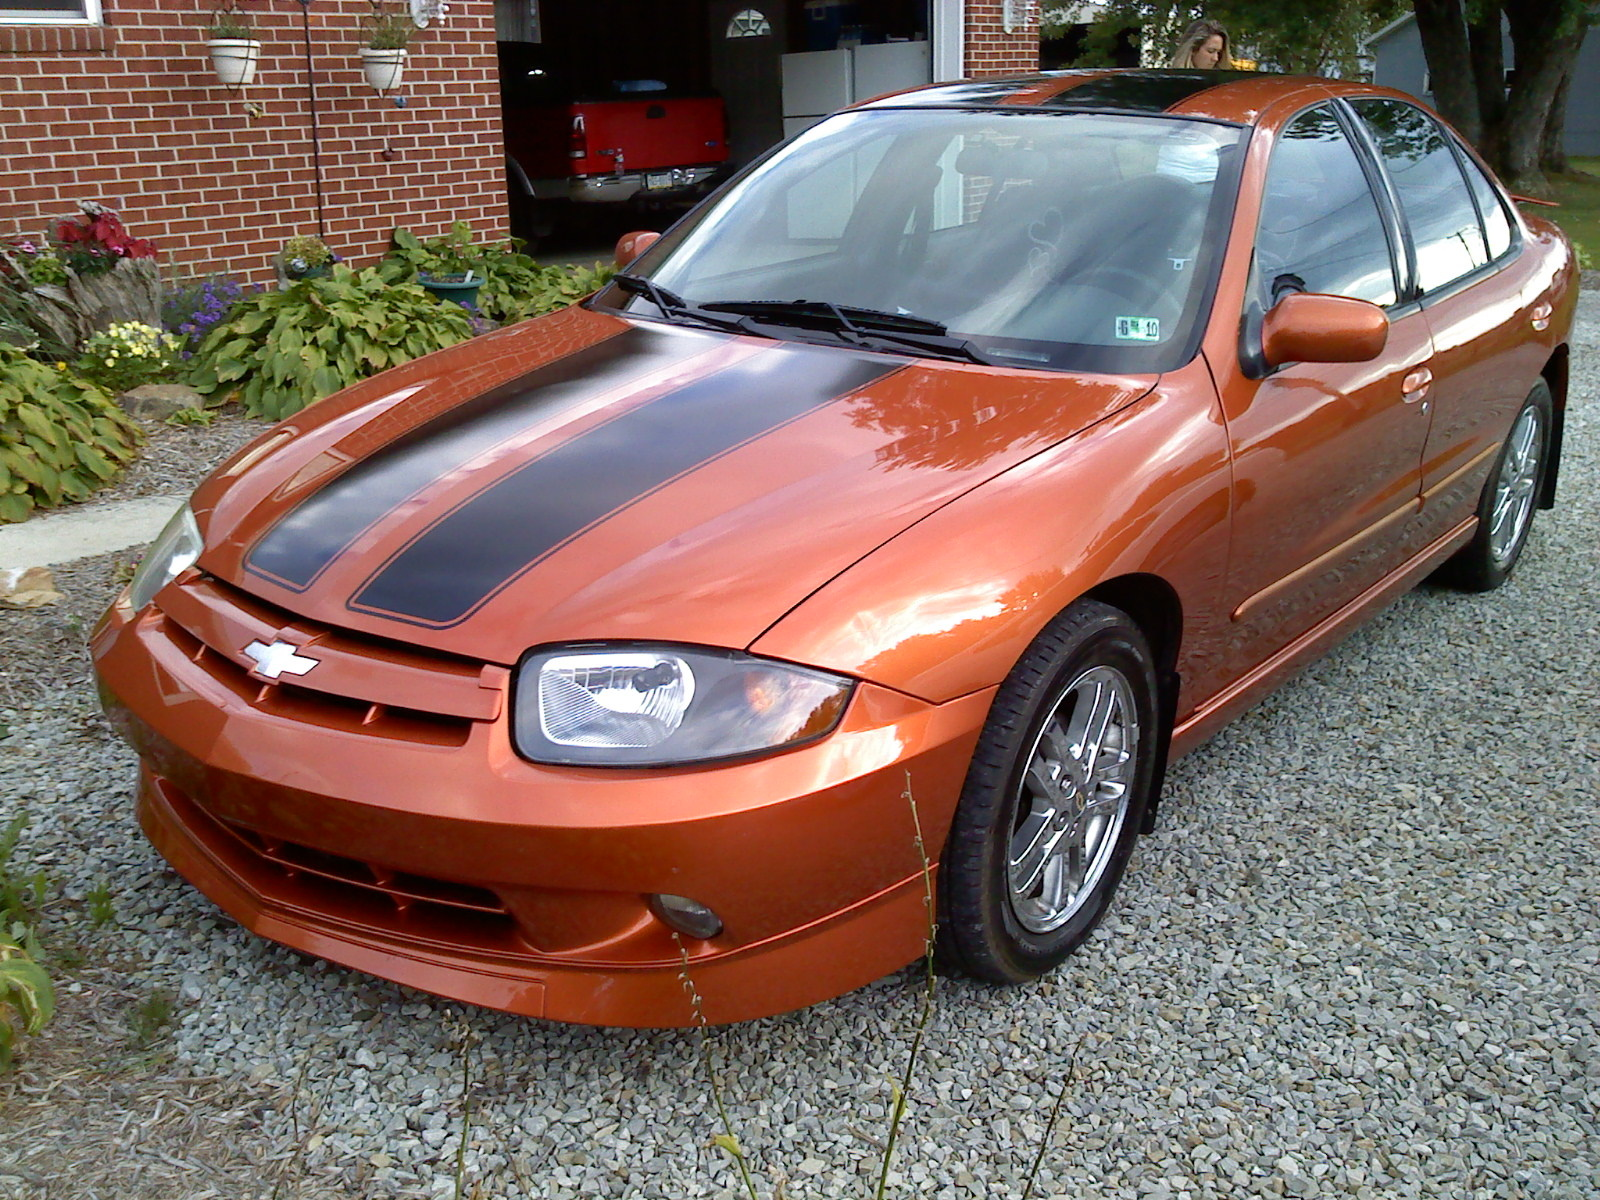 Used Volvo For Sale Cargurus >> 2004 Chevrolet Cavalier - Overview - CarGurus